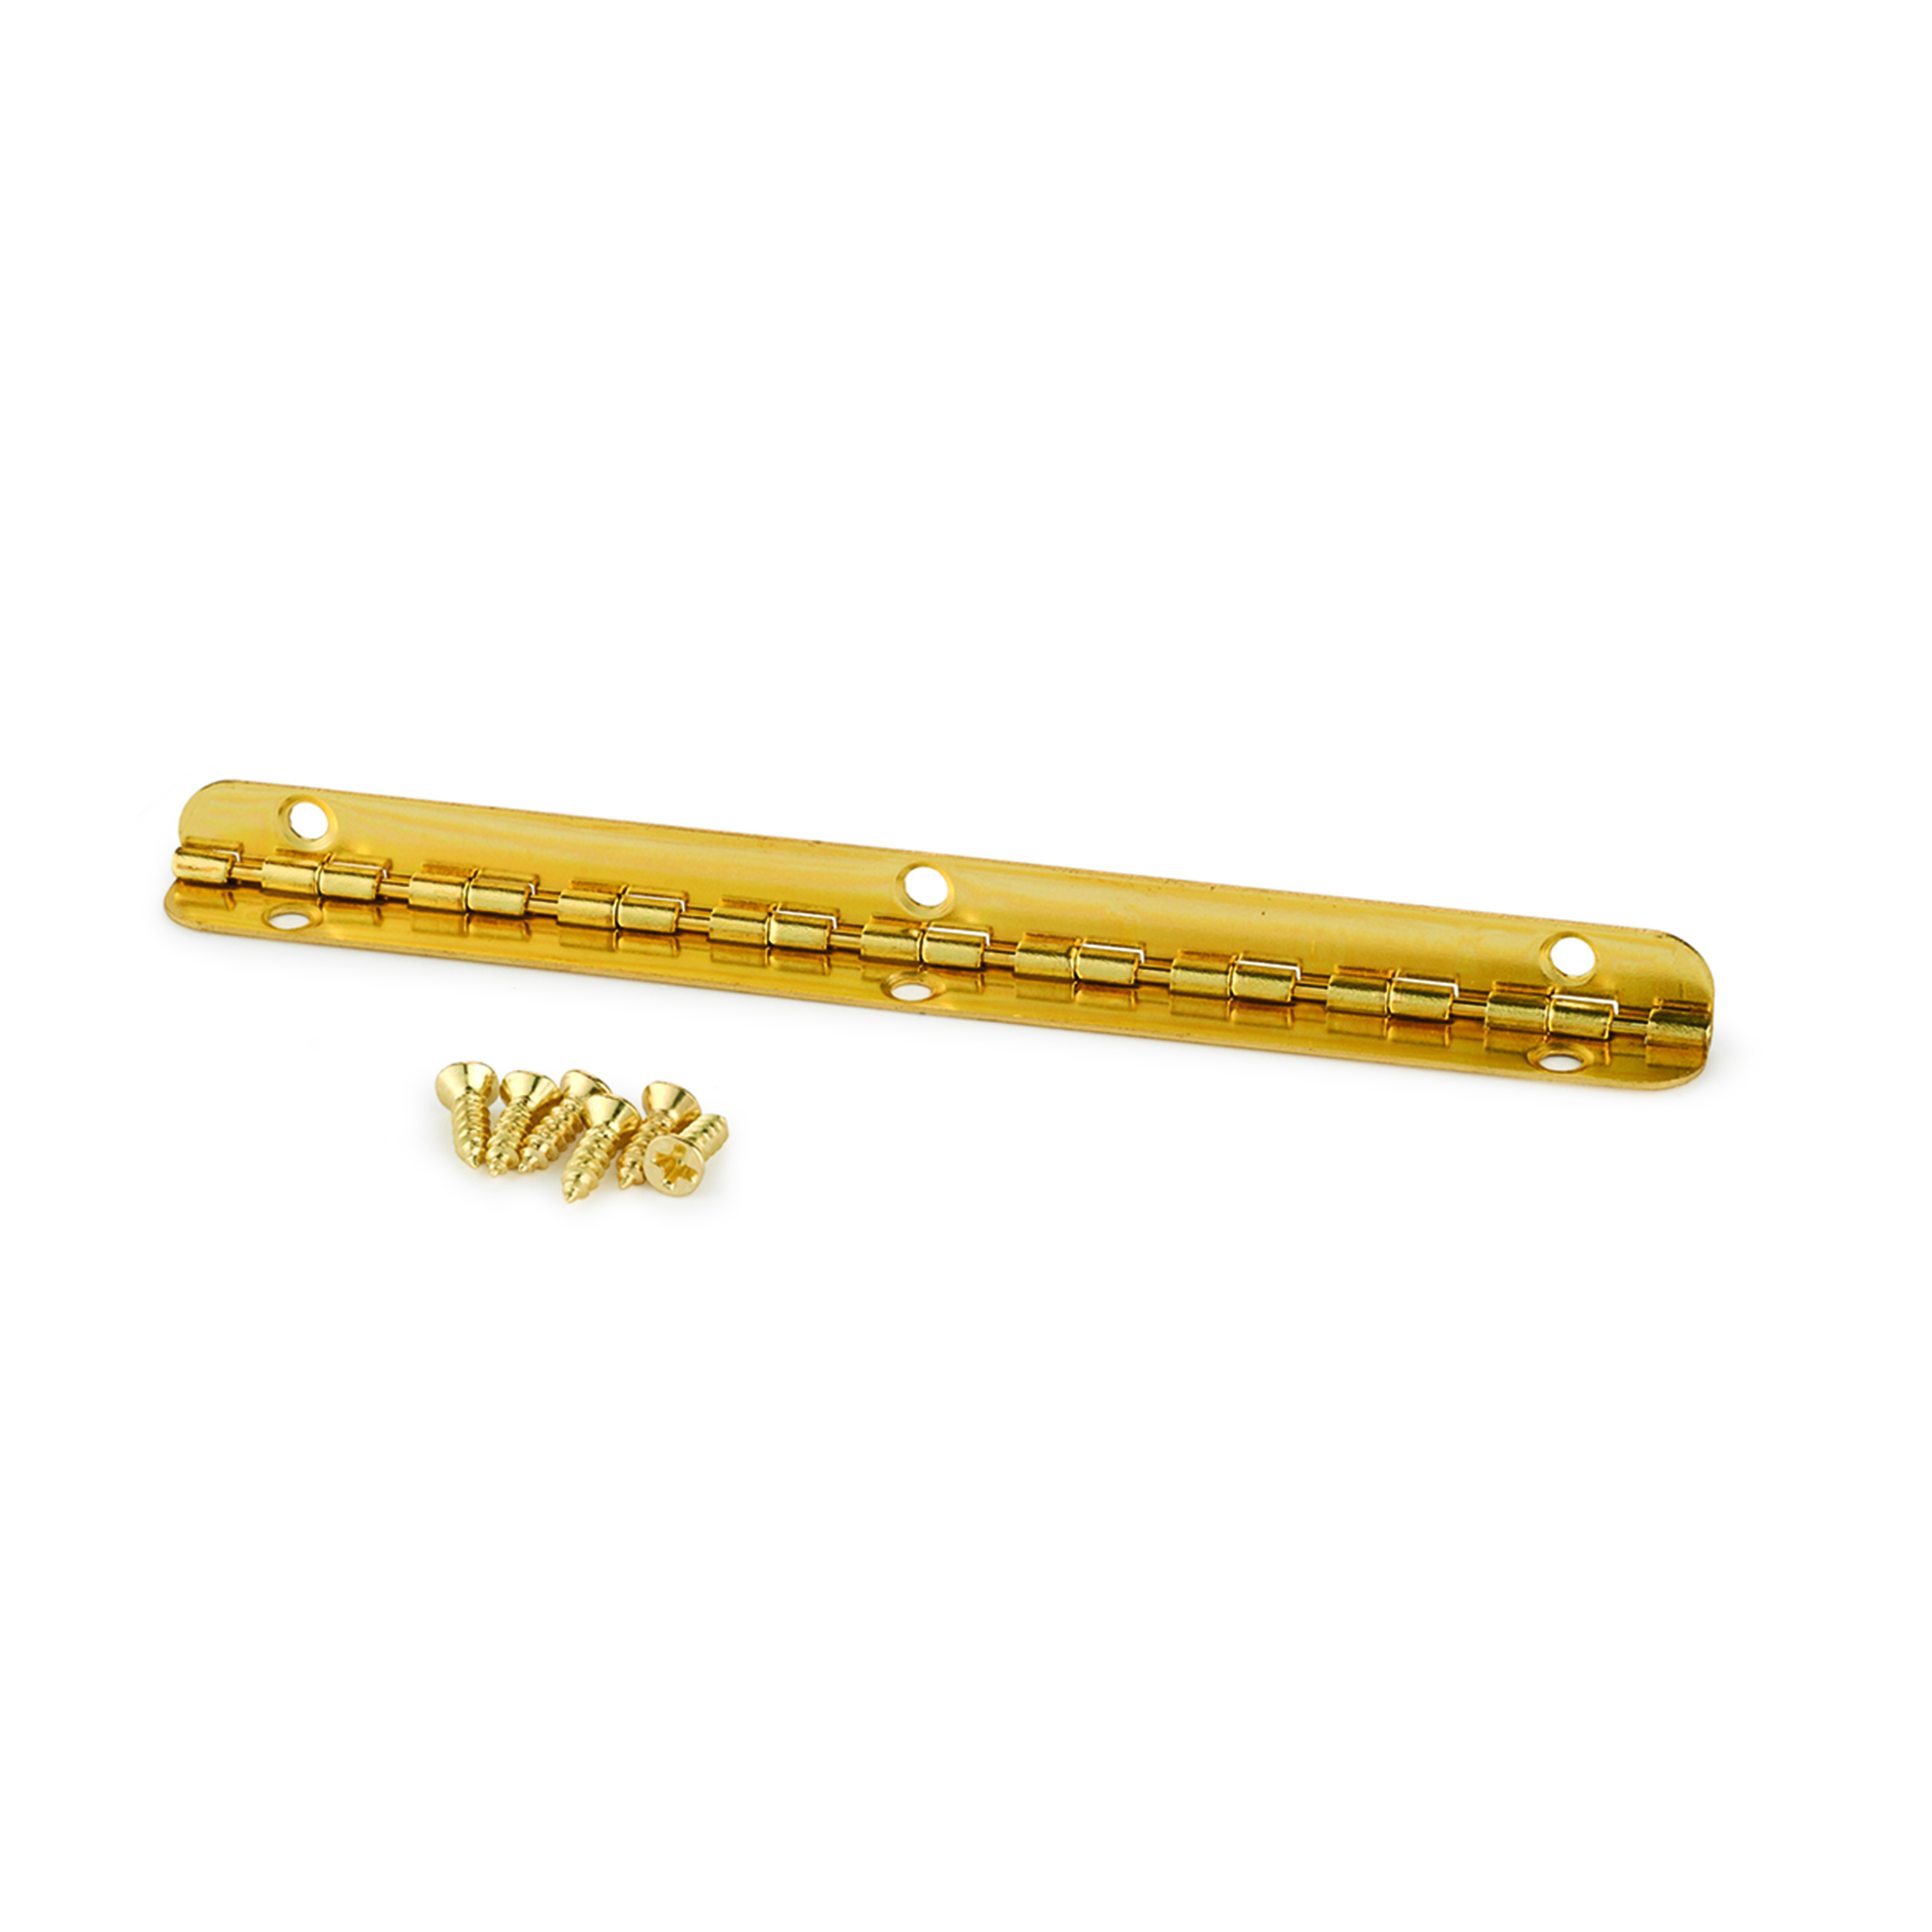 Small Piano Hinge Brass Plated 96mm X 7mm Walmart Com